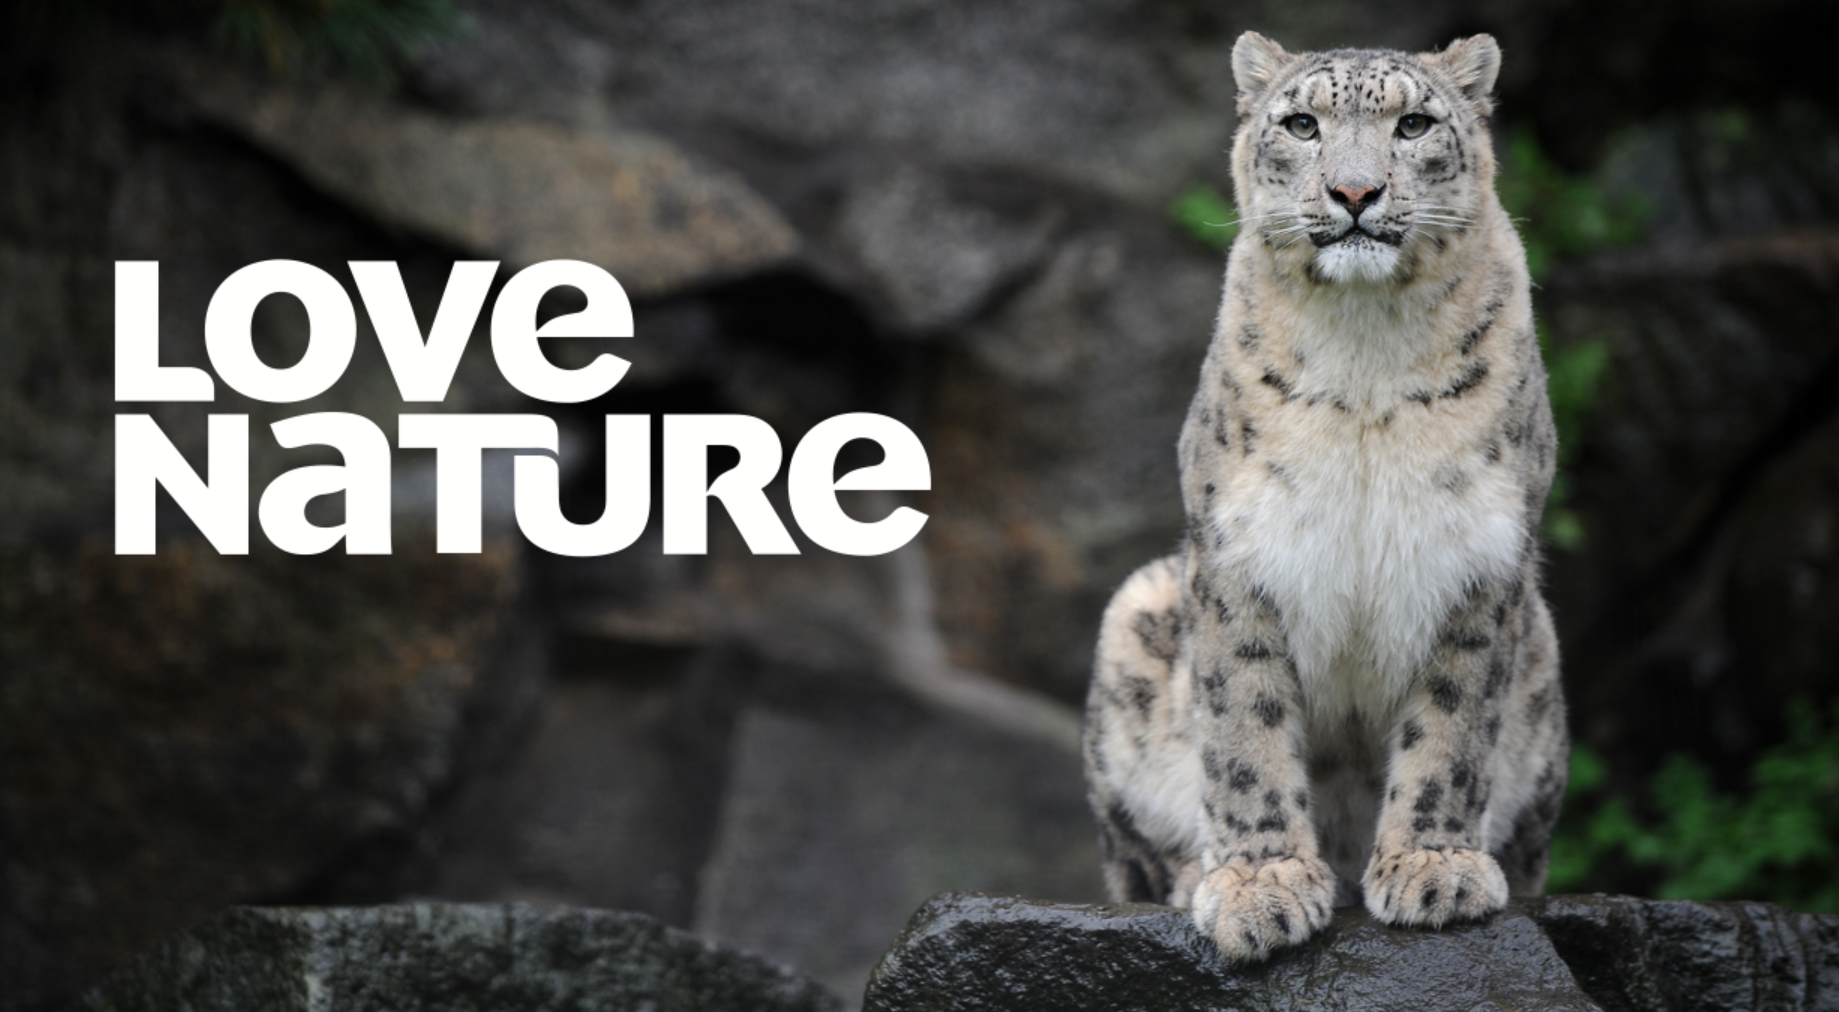 Image of: Pbs New Animal And Nature Streaming App love Nature Launches Mumbrella New Animal And Nature Streaming App love Nature Launches Mumbrella